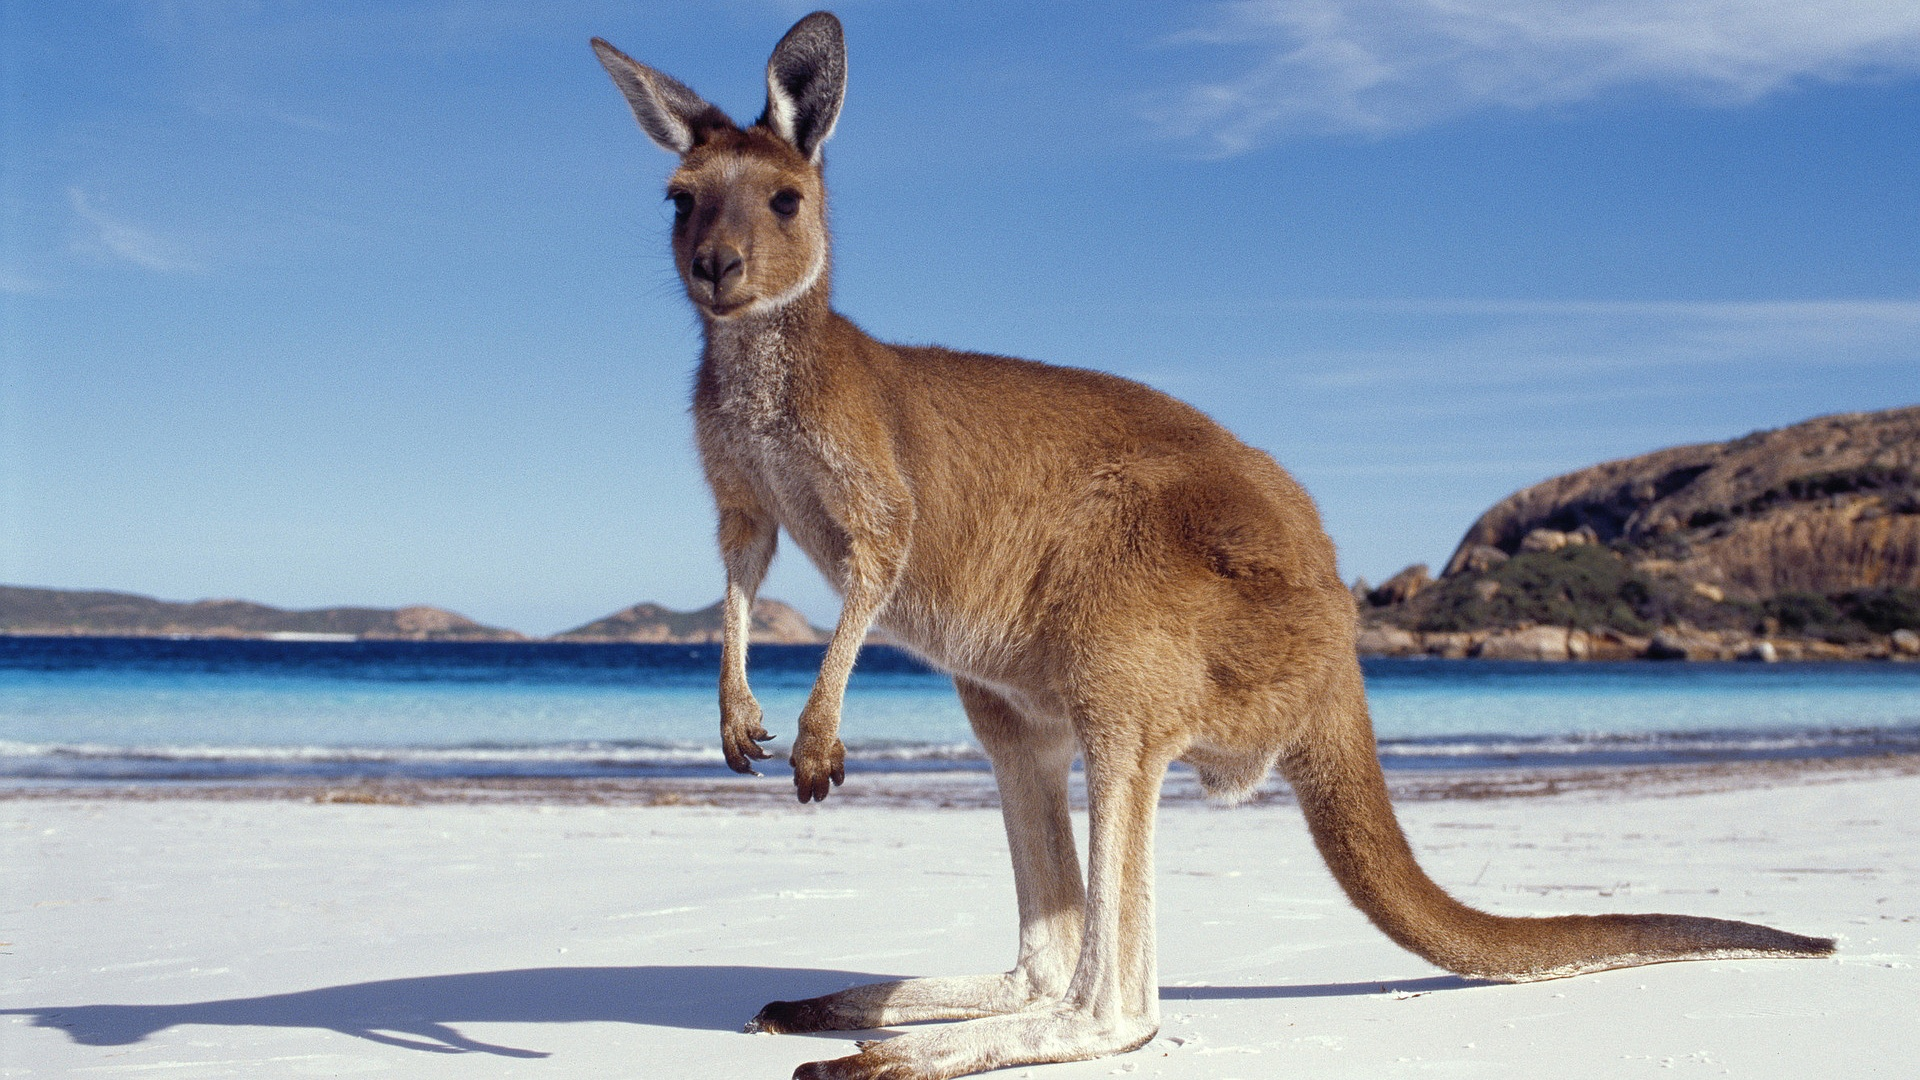 on-beach-kangaroo-hd-wallpapers-free-download-new-desktop-background-images-of-animals-widescreen